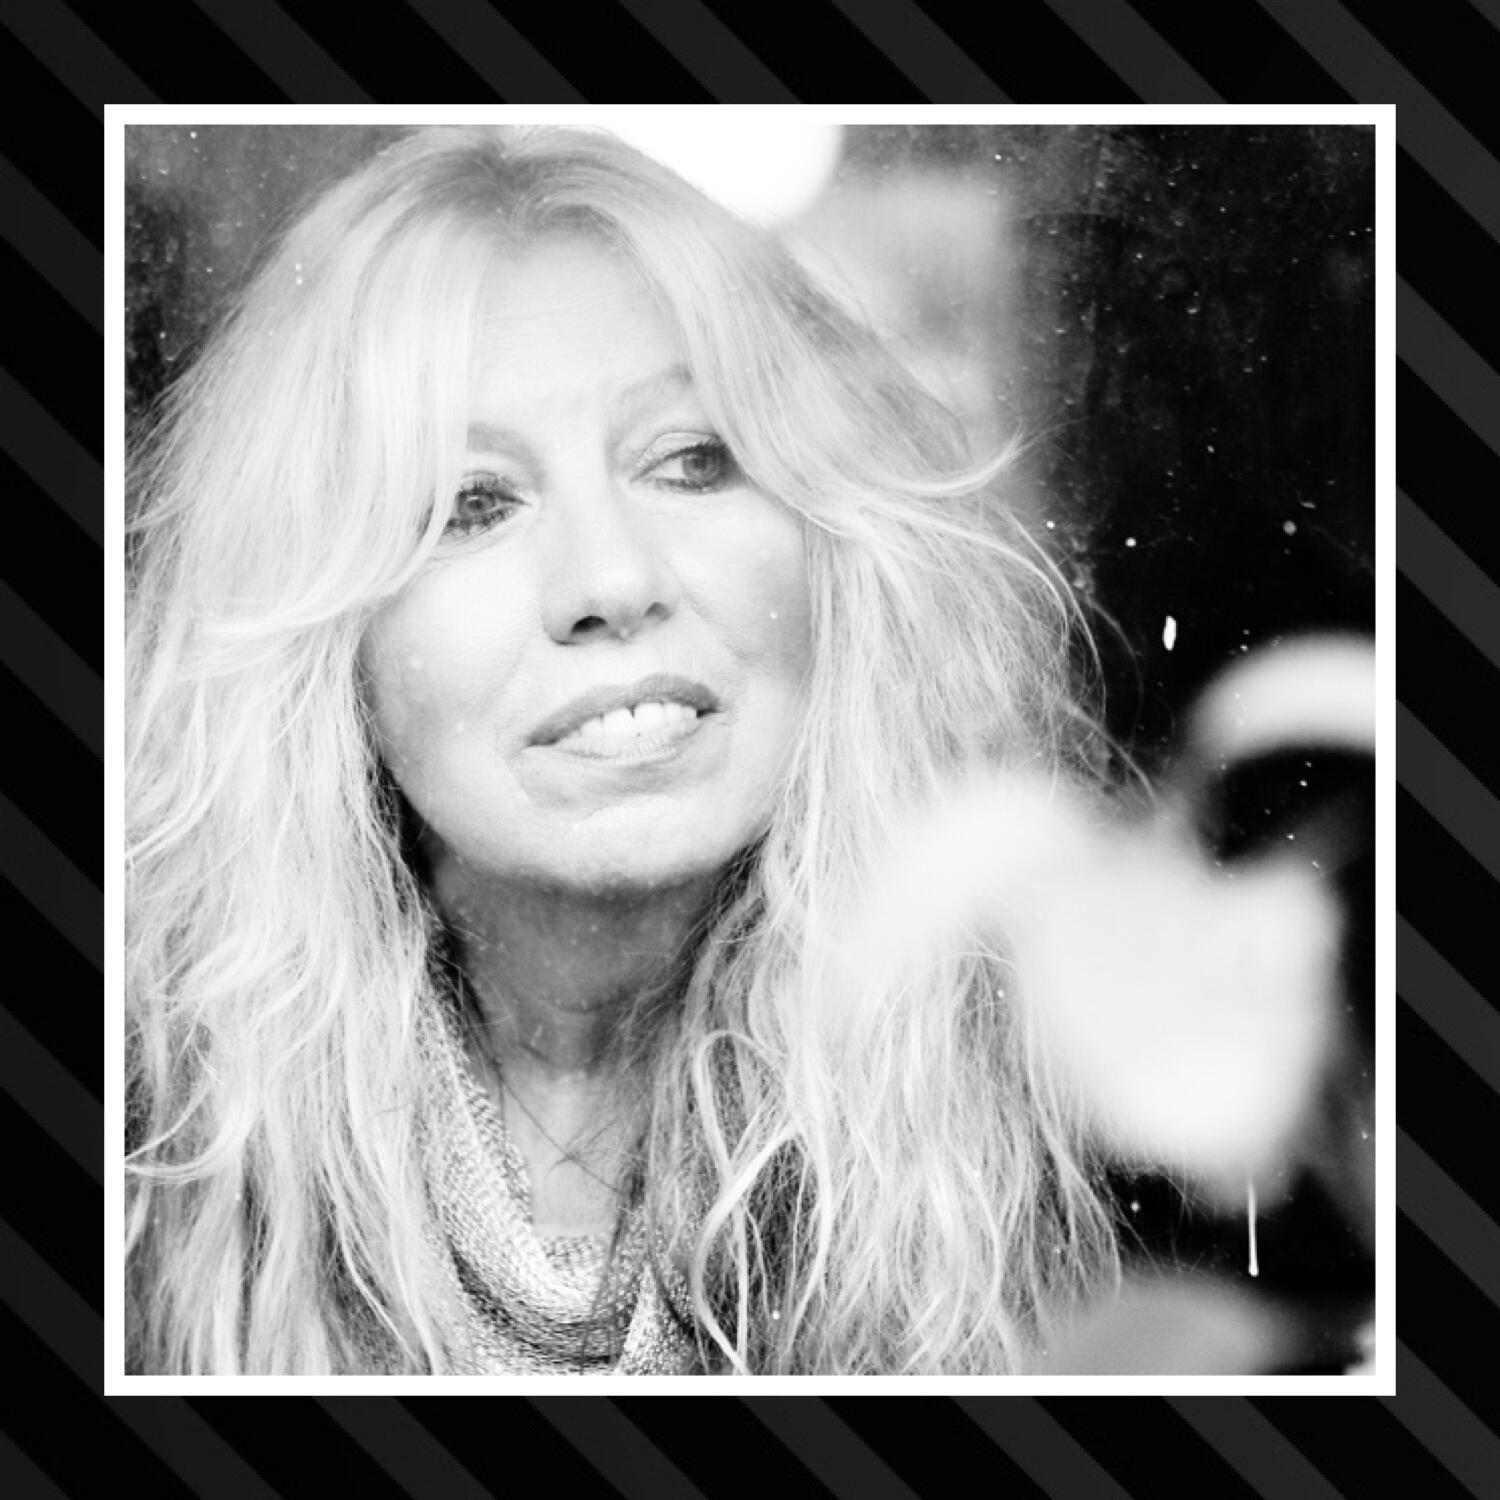 69: The one with Judie Tzuke